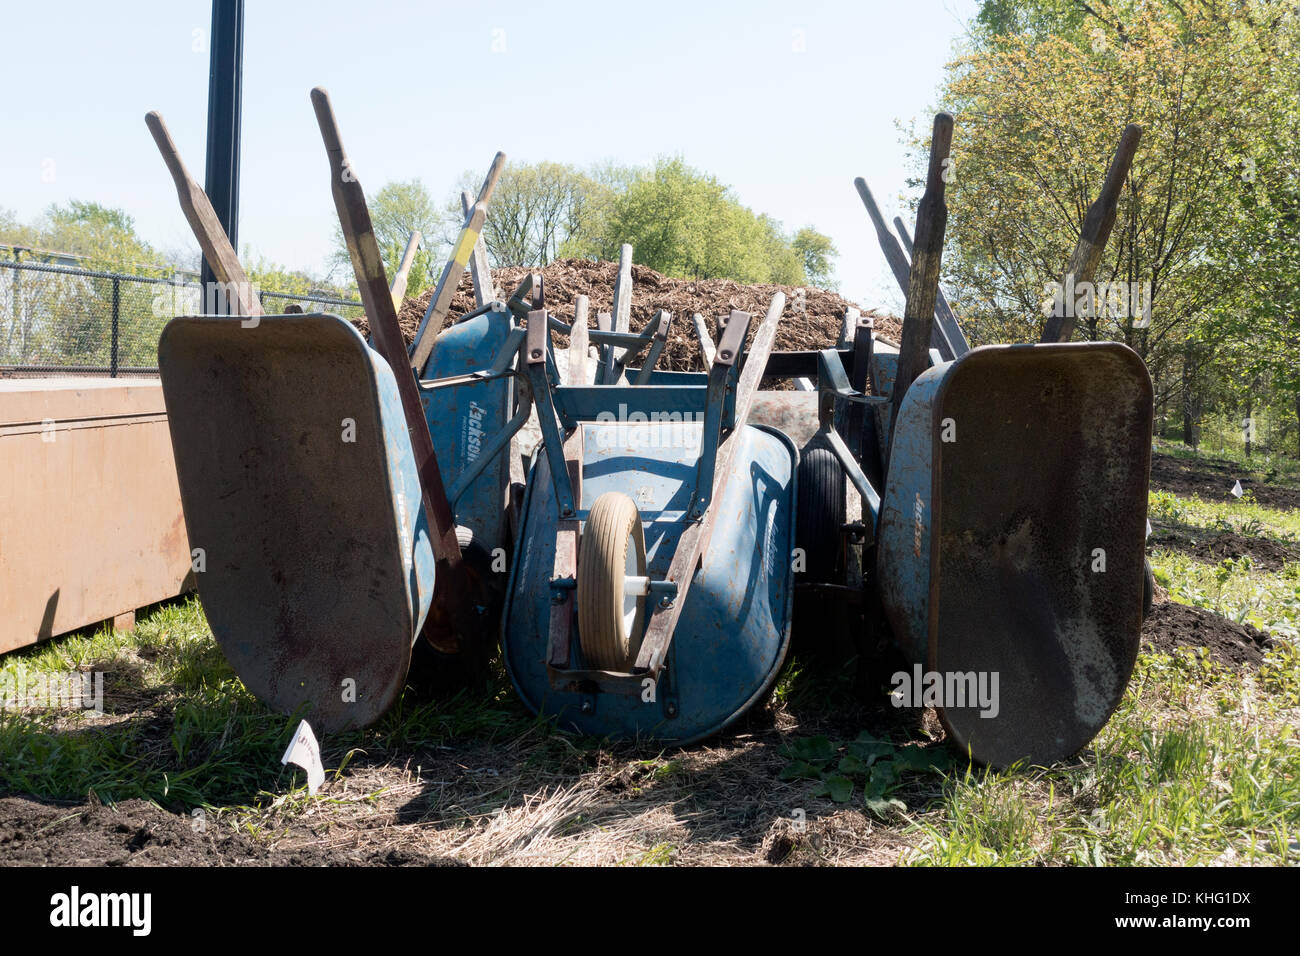 Many wheelbarrows stacked on end waiting to be used for park design near a bicycle trail. Minneapolis Minnesota - Stock Image